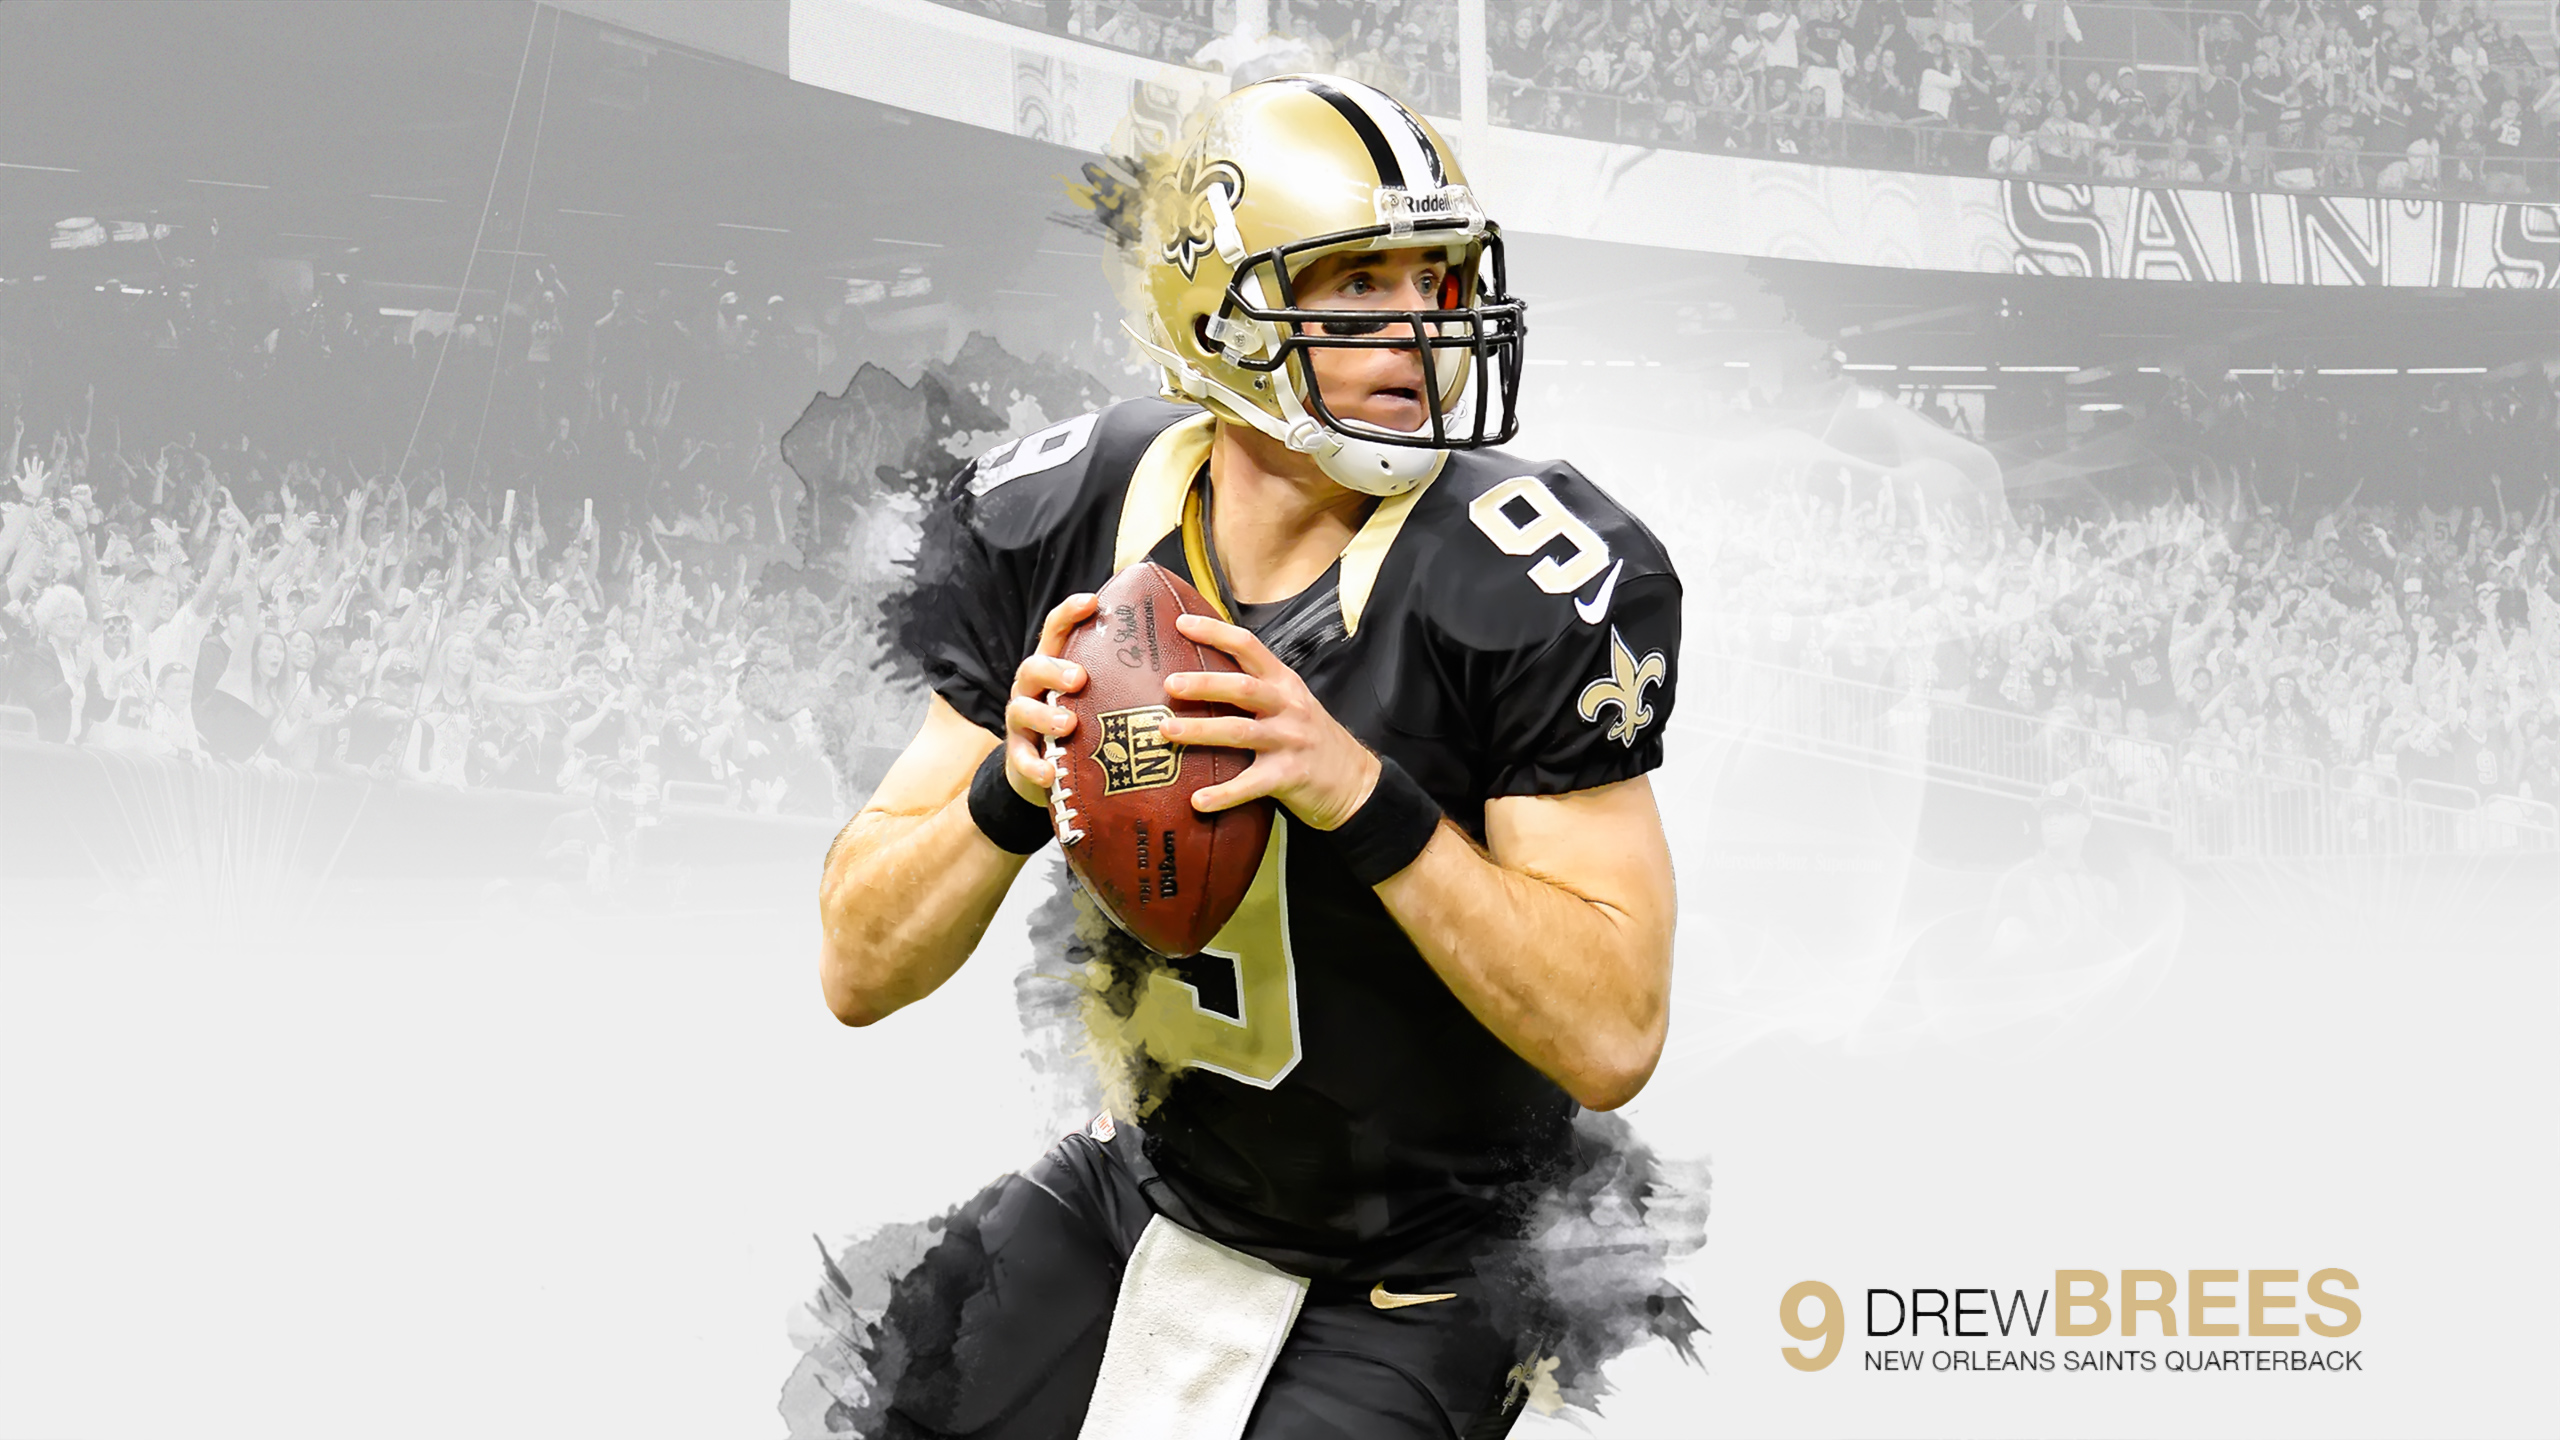 Drew Brees Wallpapers High Quality Download 2560x1440